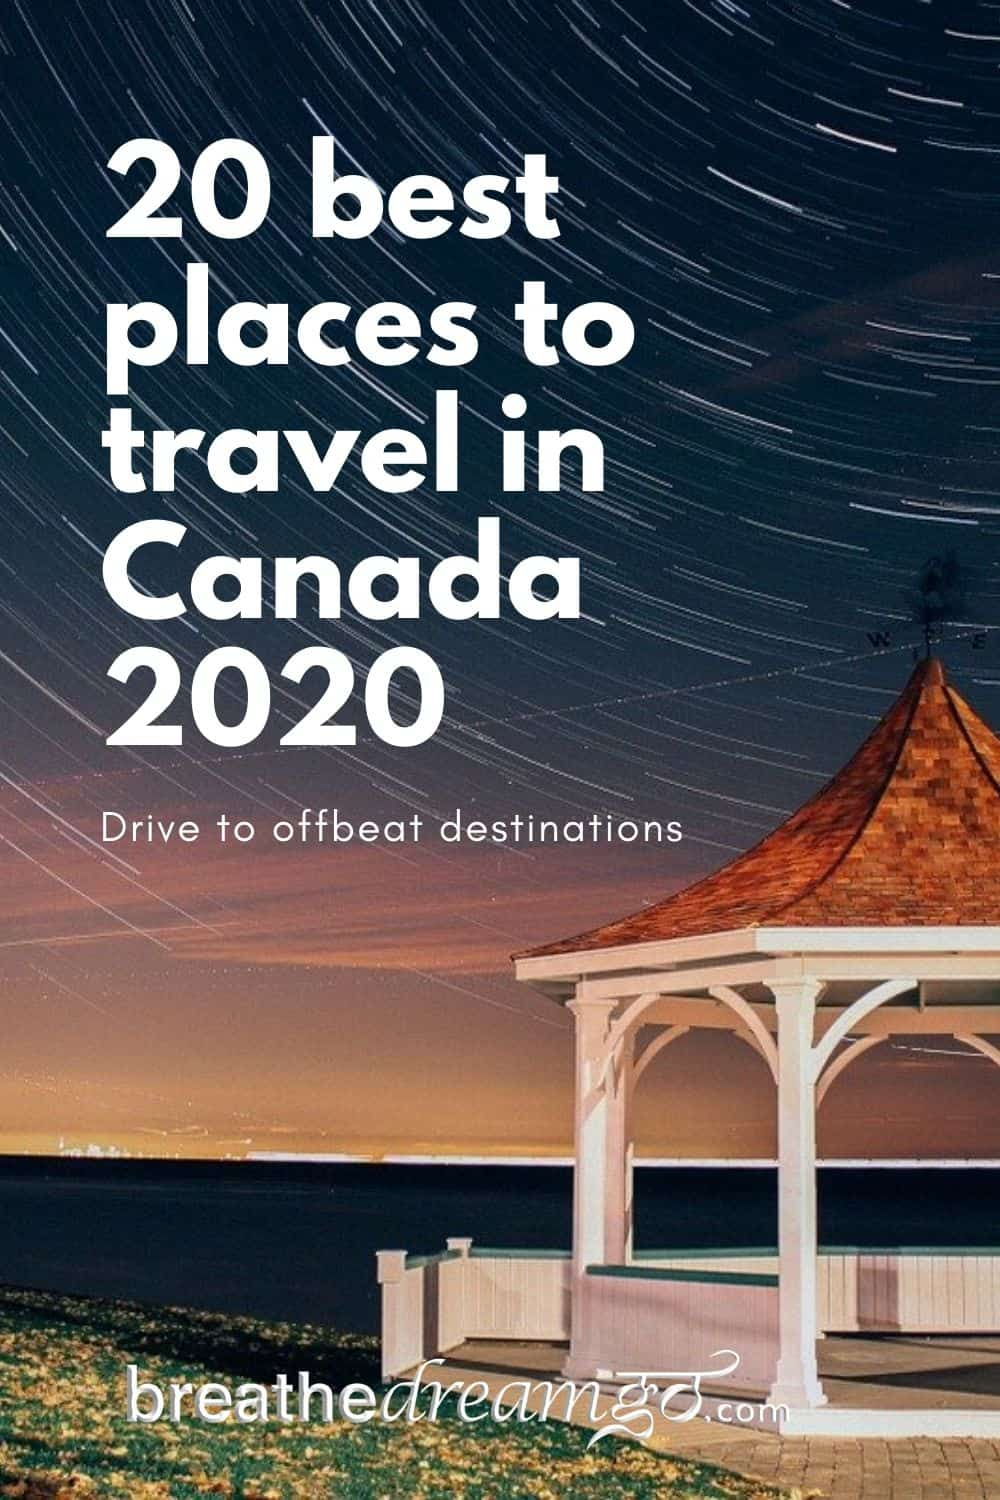 20 best places to travel in Canada 2020